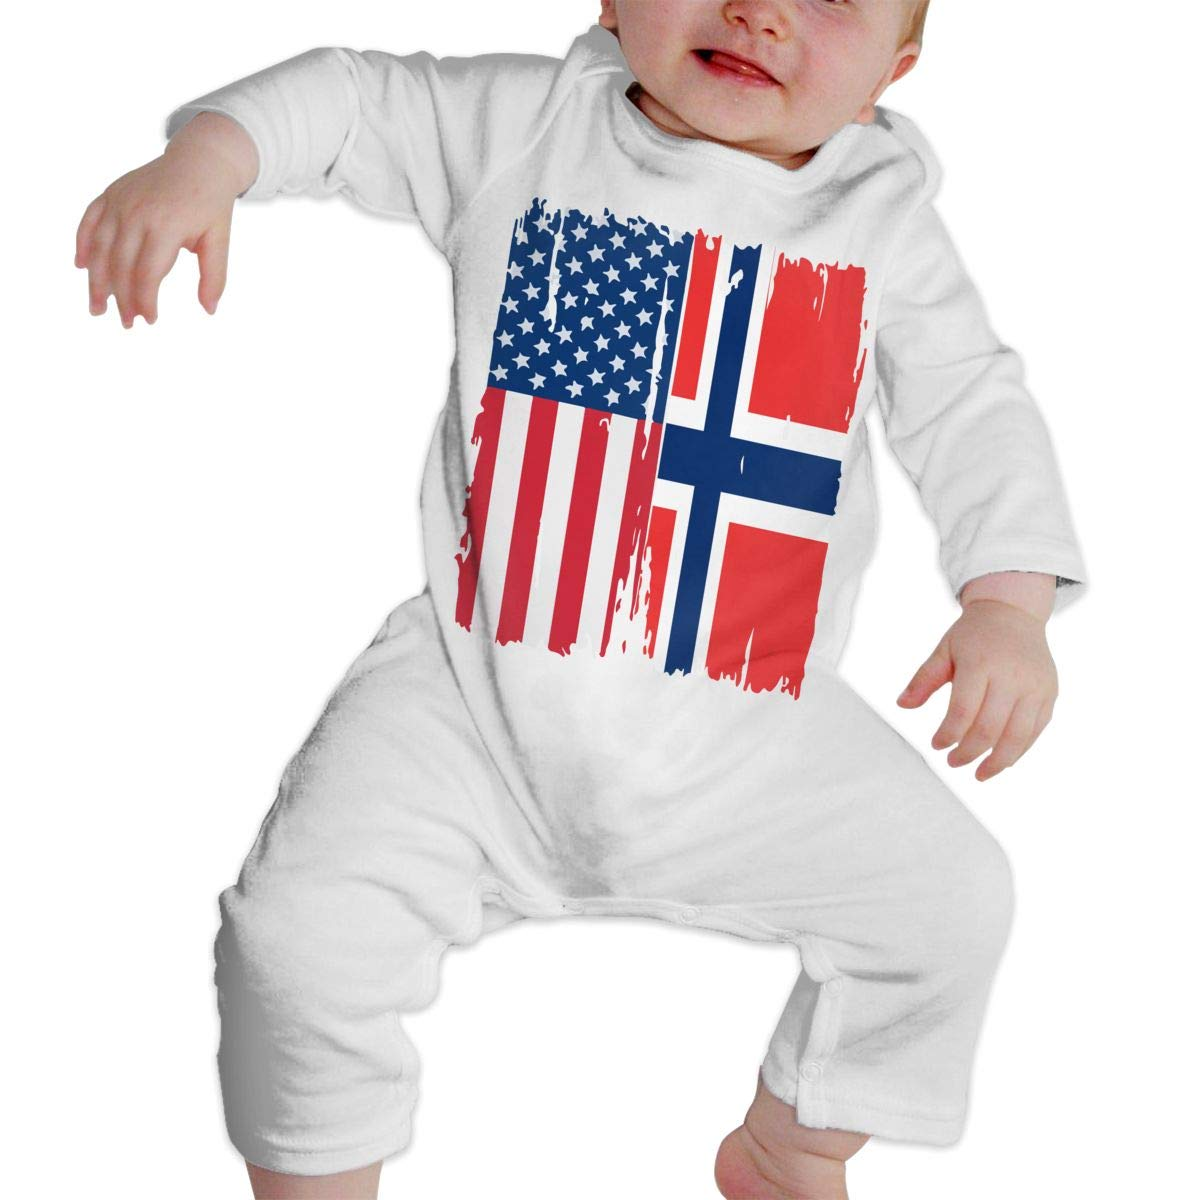 A1BY-5US Infant Babys Cotton Long Sleeve American Norway Flag Climb Jumpsuit Funny Printed Romper Clothes